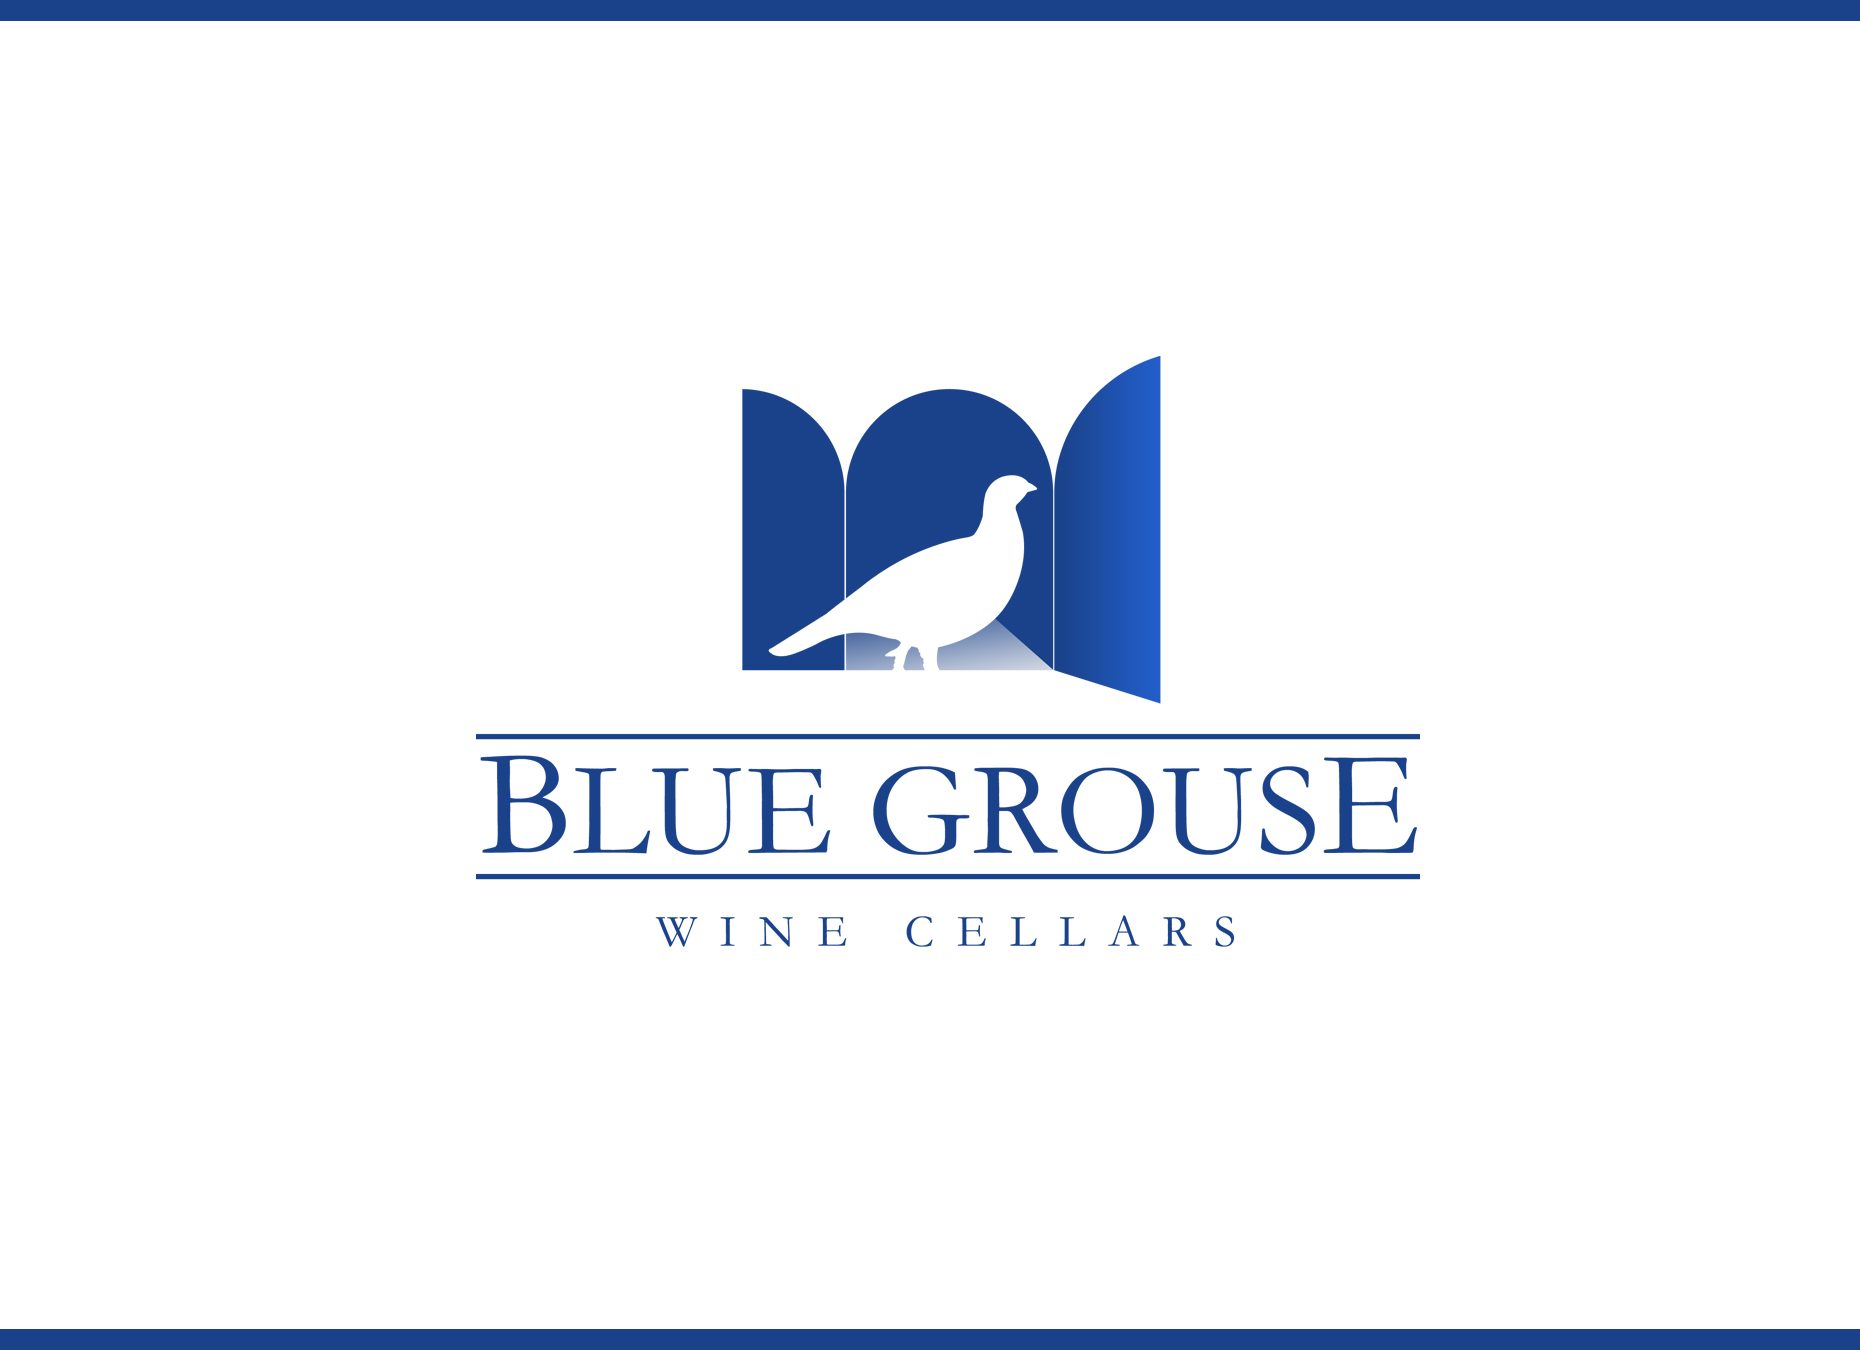 Logo Design by omARTist - Entry No. 139 in the Logo Design Contest Creative Logo Design for Blue Grouse Wine Cellars.